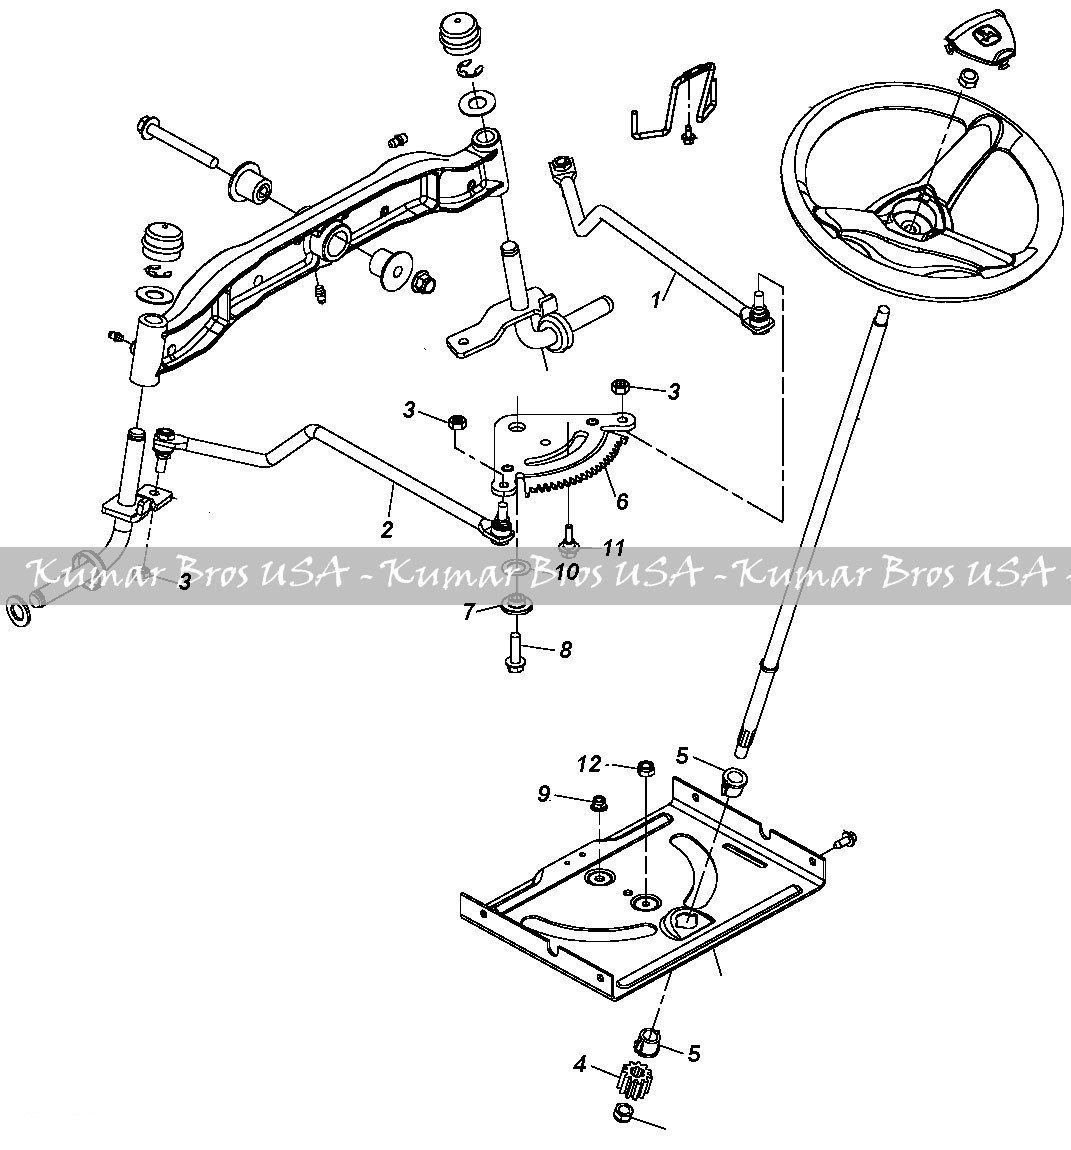 John Deere L111 Diagram Tie Bar Content Resource Of Wiring La140 Amazon Com Tractor Steering Kit La145 La150 La155 Rh Belt Parts